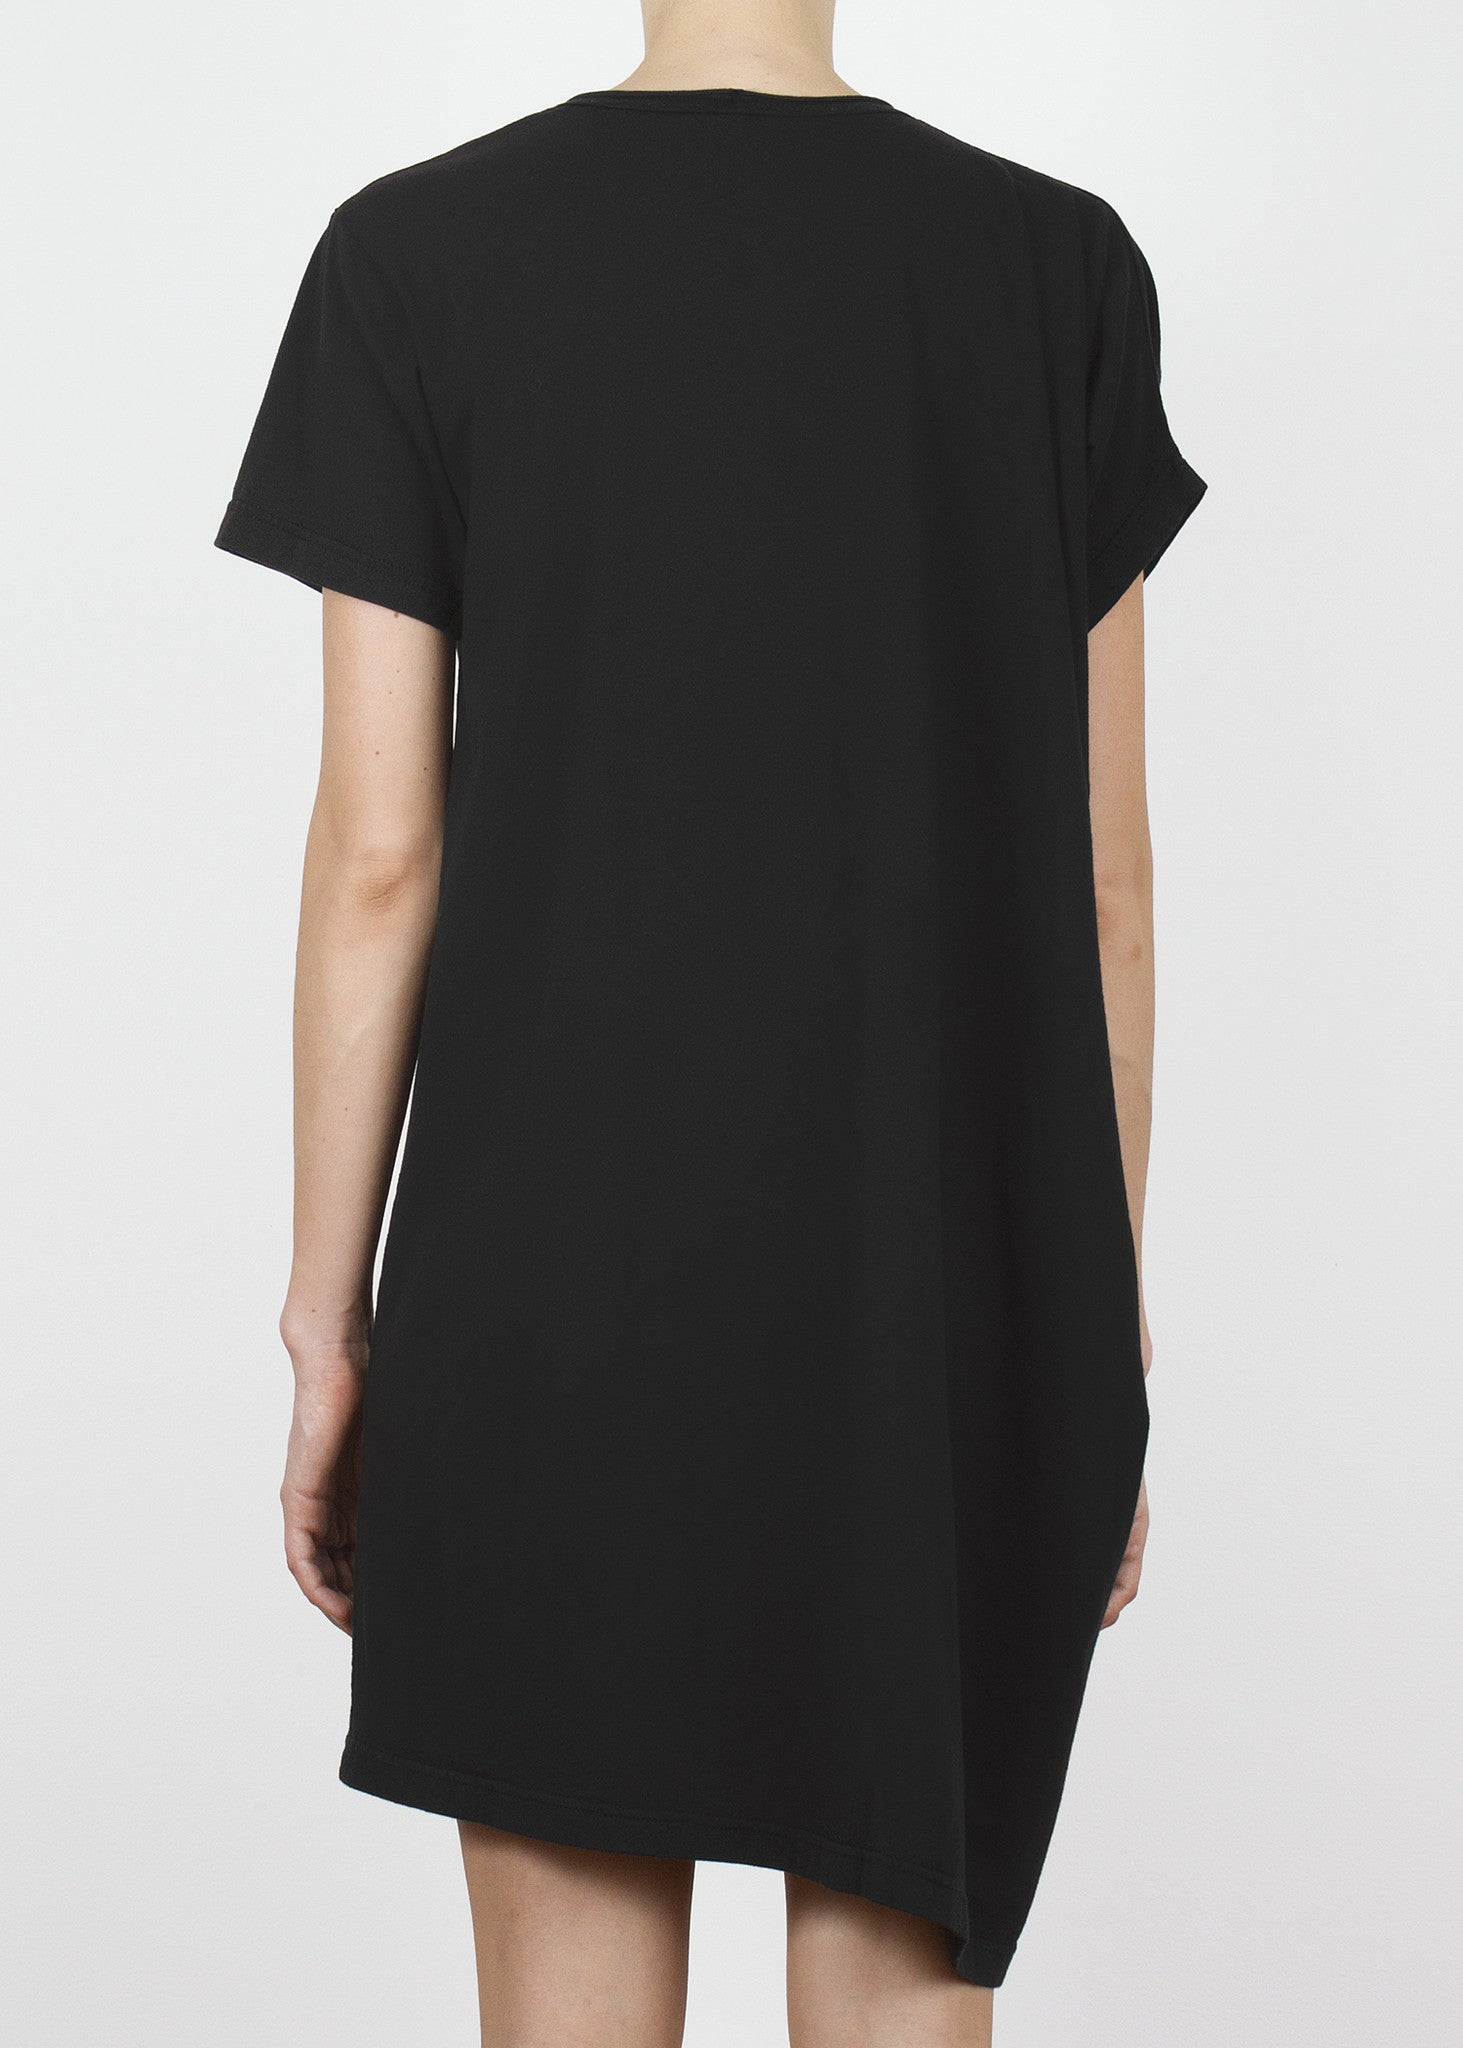 ebb tunic - black